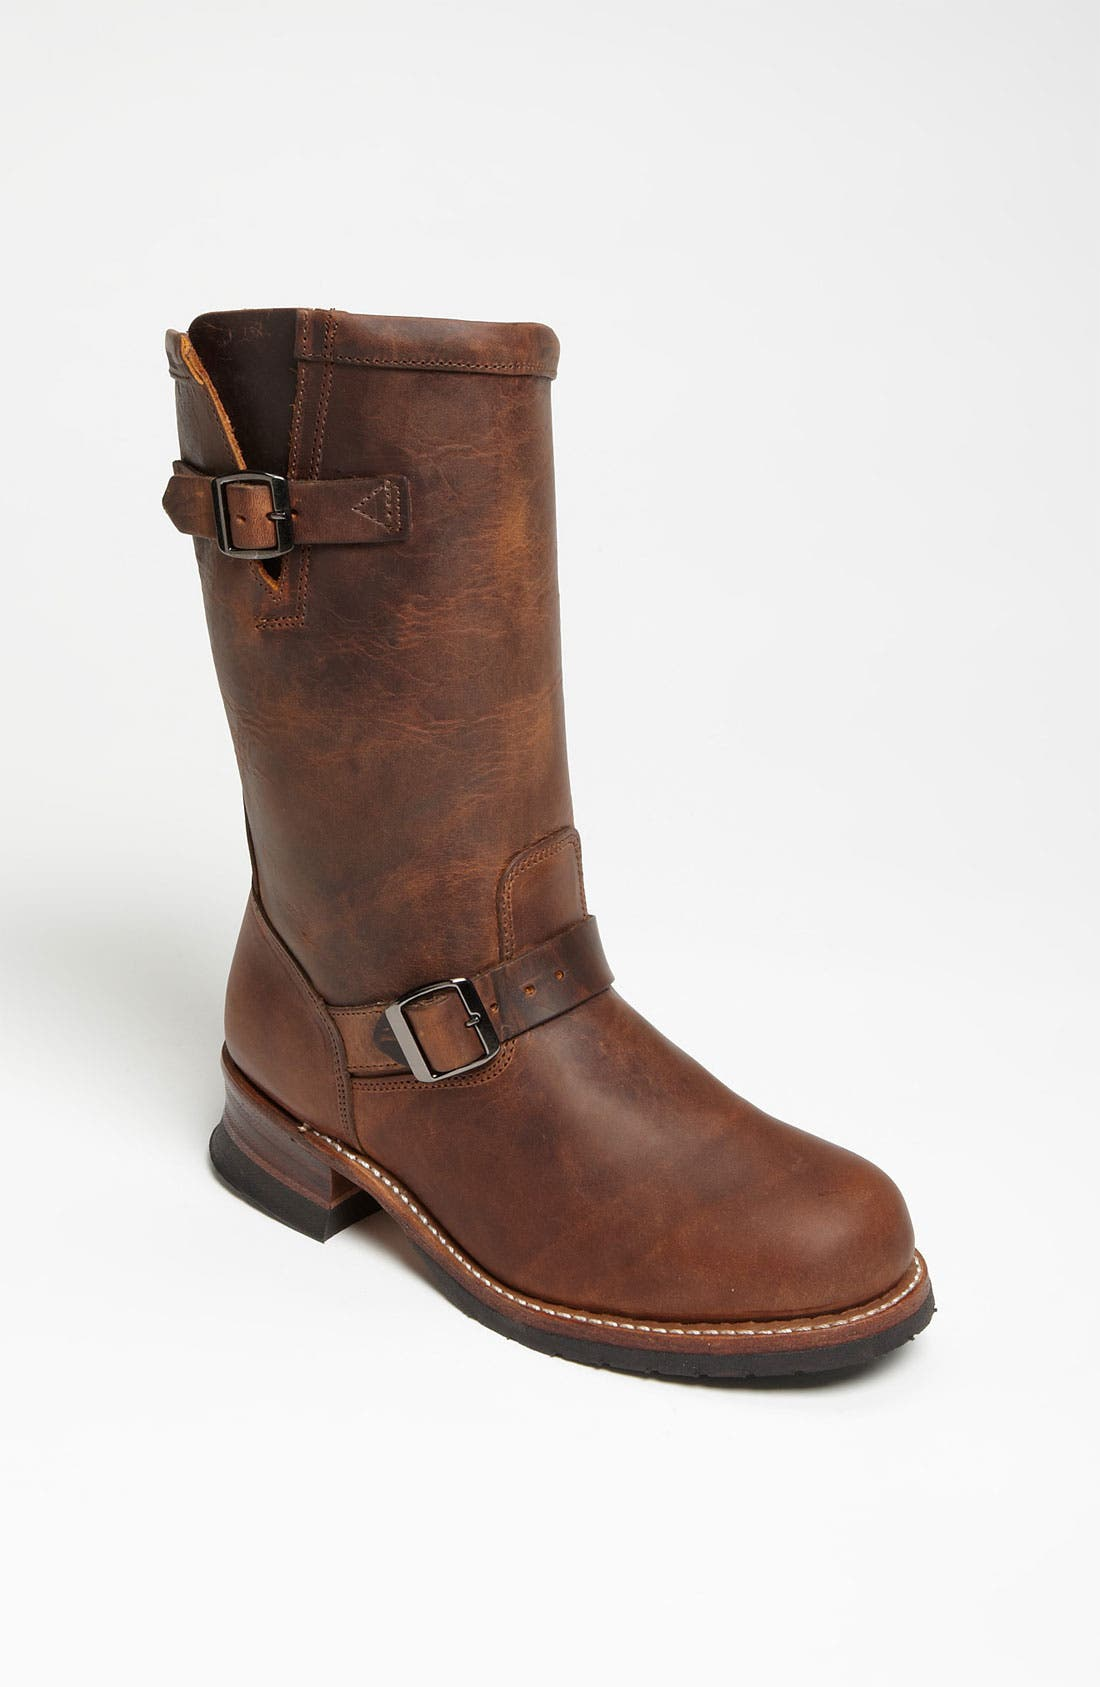 Alternate Image 1 Selected - Wolverine '1000 Mile - Stockton' Boot